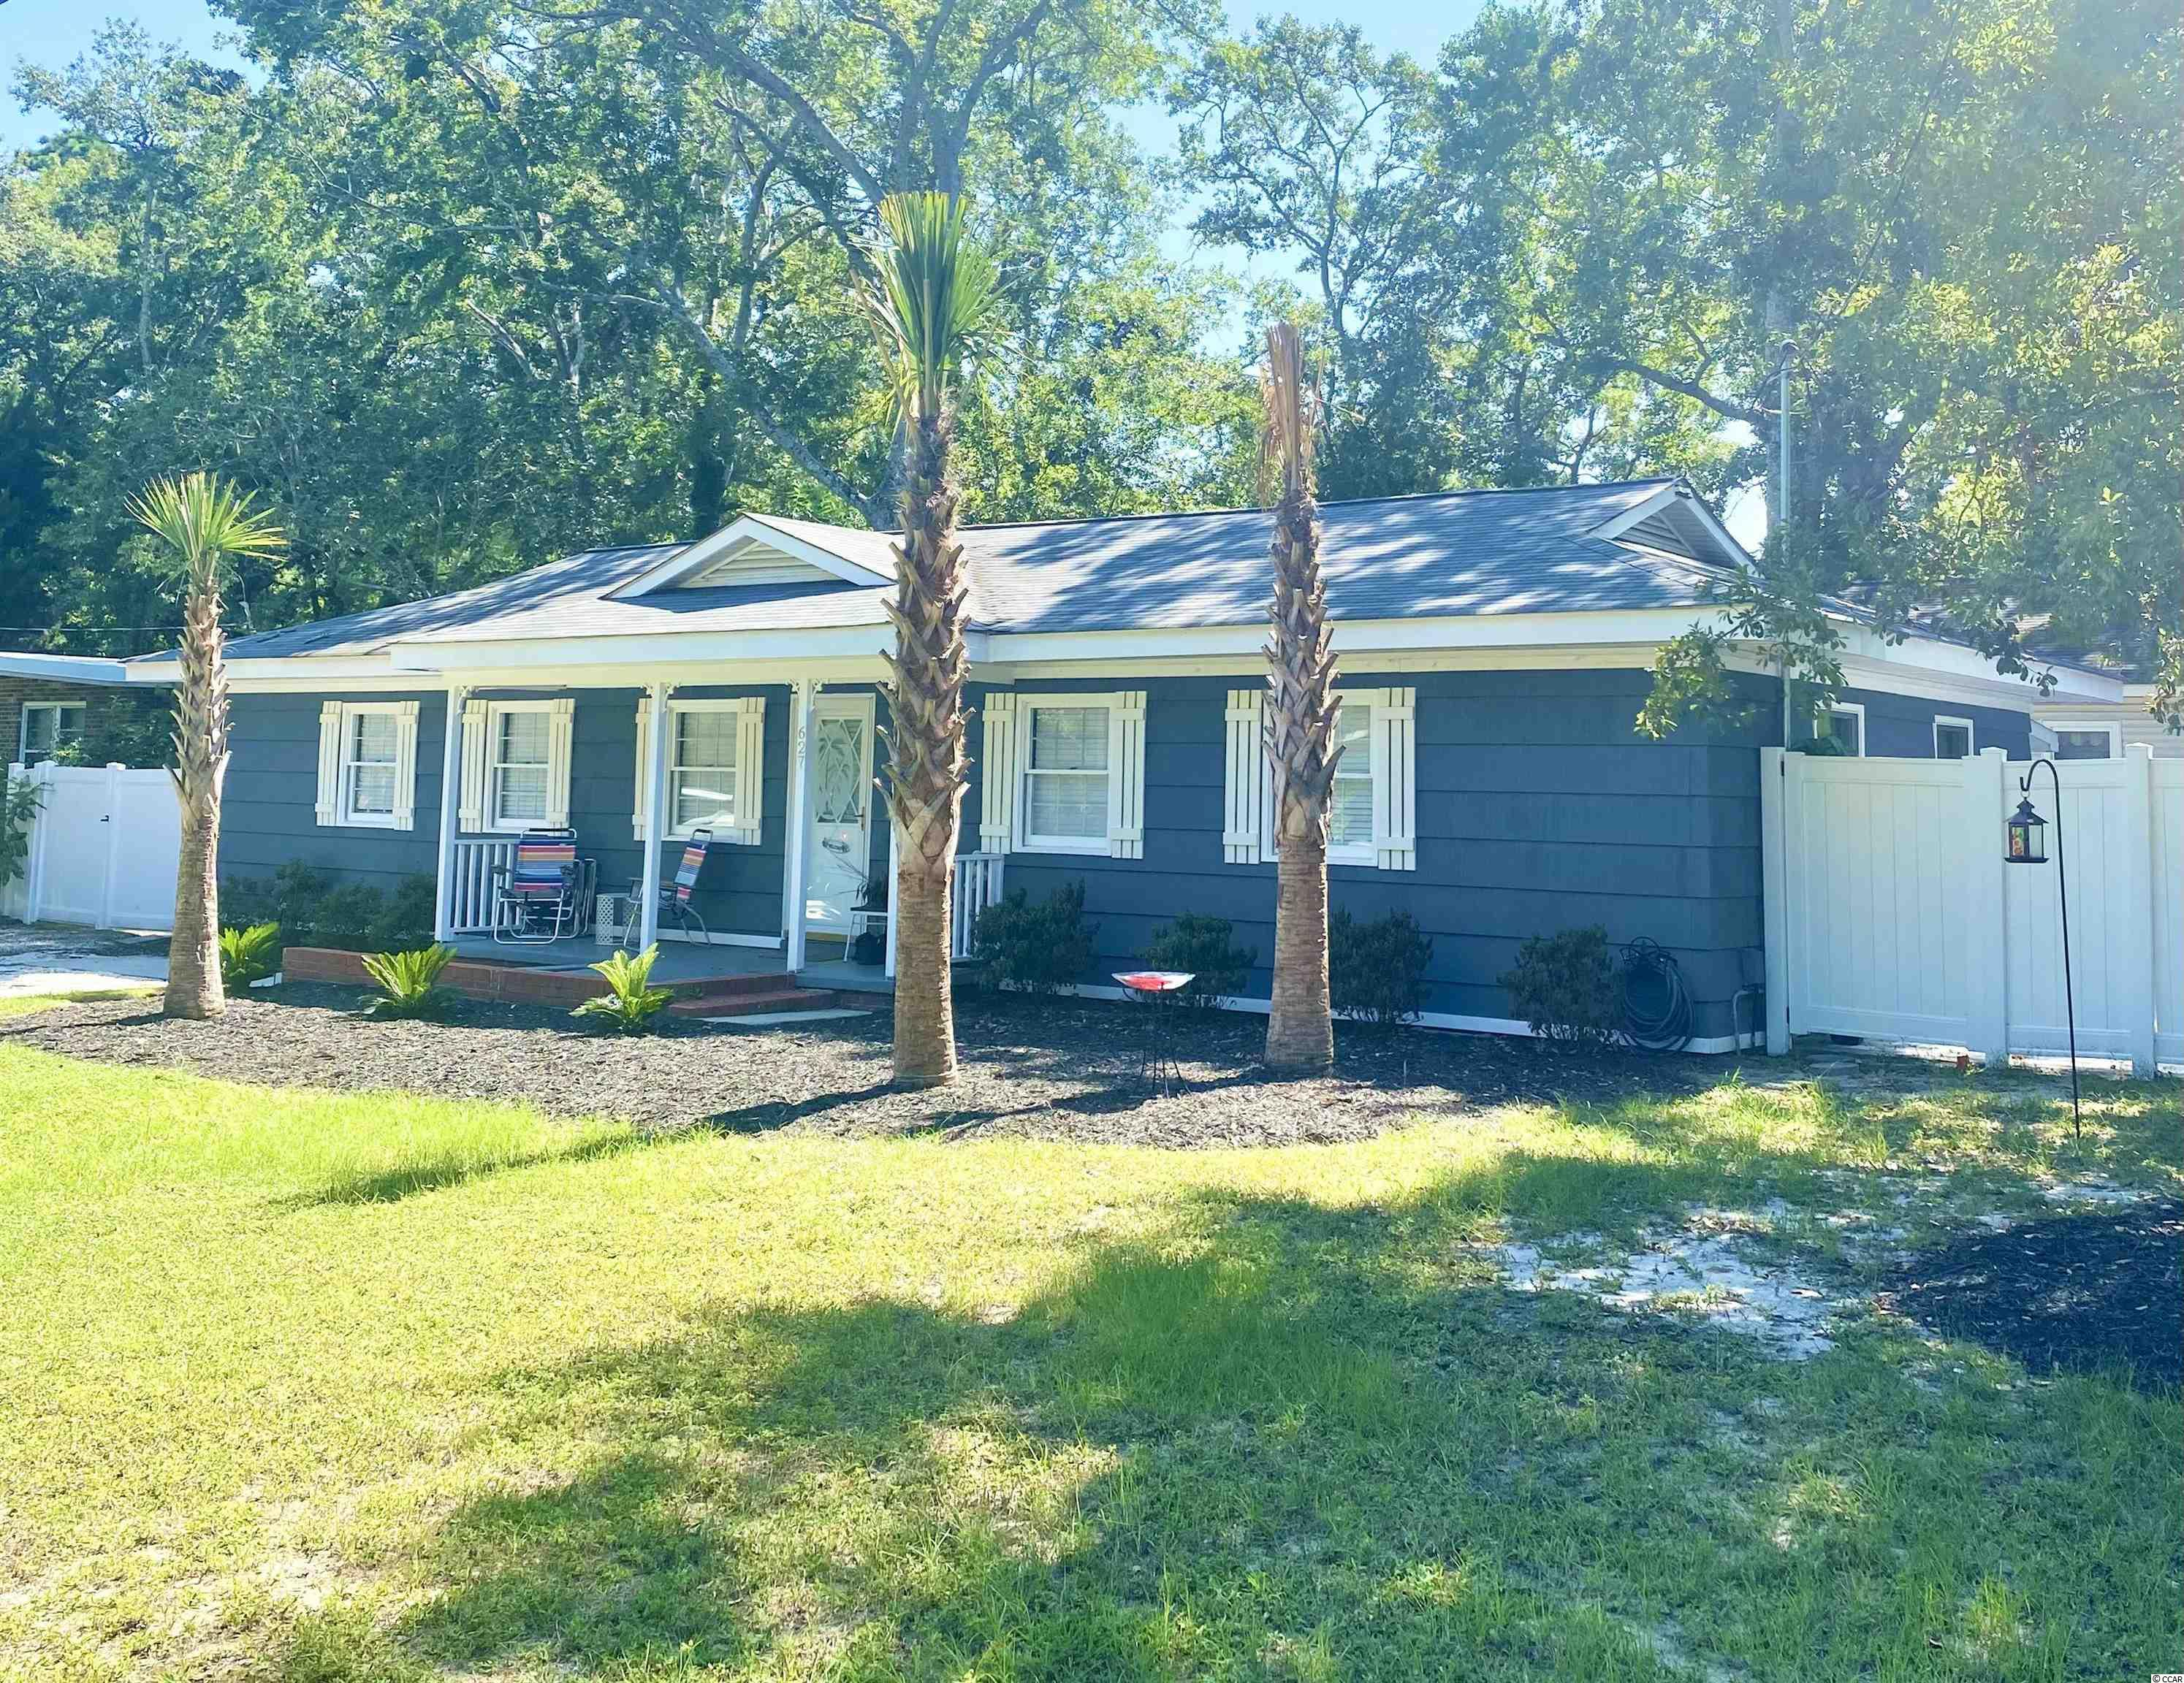 This is your chance to own a gorgeous beach cottage in the popular, family friendly Town of Surfside Beach. This fully furnished immaculate home is move in ready, all you need are your clothes! Located on a corner lot with beautiful trees and new landscaping, this gem is less than a 1/2 mile to the sand. With tons of natural light and an open floor plan, your entire family will love this home! The kitchen offers a large island/breakfast bar, white cabinets and SS appliances. The kitchen overlooks the living and dining areas so your whole family can be together while you are preparing meals. Behind the dining area you will find the laundry closet and also an extra flex space that can be used as a coffee bar area, wet bar, storage, etc. The living room boasts classic cottage style walls and ceilings with a built in electric fireplace surrounded by shiplap. The generously sized master bedroom has multiple windows, 2 closets including a walk in with barn door, a gorgeous ensuite and enough space to create a separate sitting area. The other bedrooms are nicely furnished and equipped with all you need. You will love the hall bath with walk in shower and charming touches. The entire home is tastefully decorated with upscale furniture and finishings. Head out back through the french doors to your fully fenced and private back yard for the perfect relaxation and/or entertainment spot! The backyard has recently been re-done to include a brand new patio area with concrete pavers, new furniture and a hot tub! There is also an attached storage shed and room on the other side of the yard to park your golf cart. This property is located in the award winning St James school district and close to everything including shopping, dining, health care and, of course, the beach.  Don't miss out on this one!